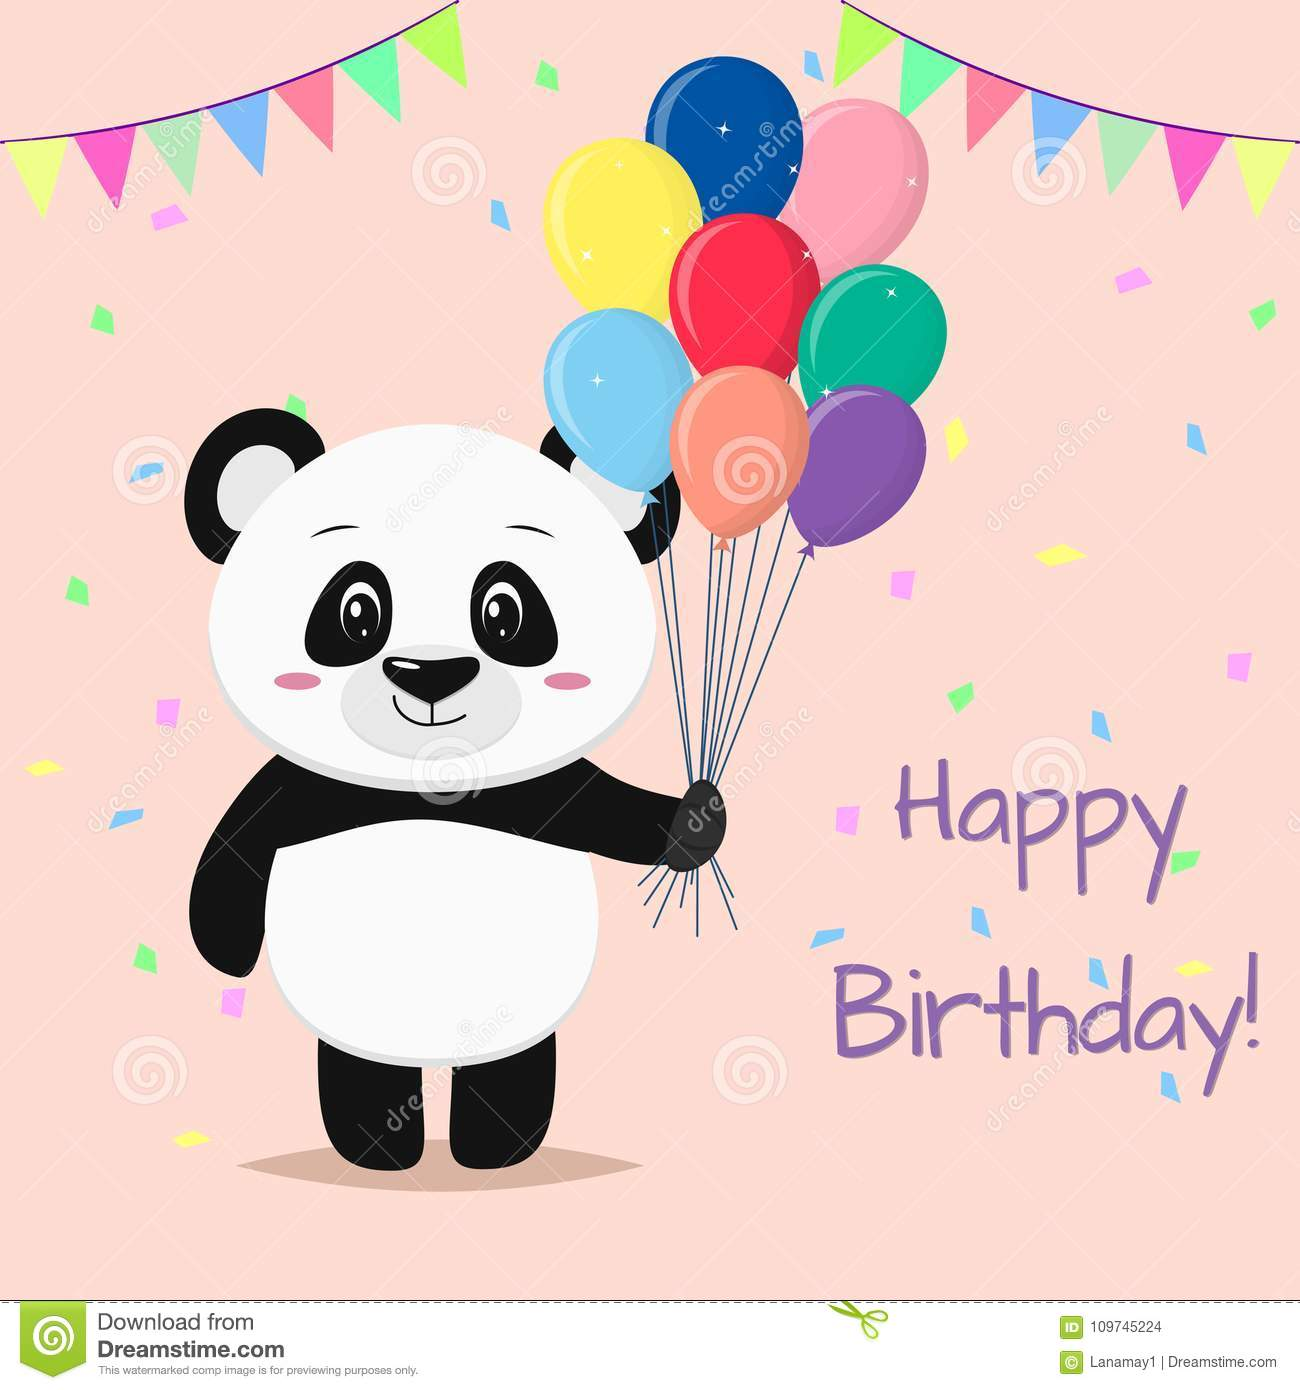 A Sweet Panda Is Standing And Holding Many Different Balloons In Its Paws Happy Birthday